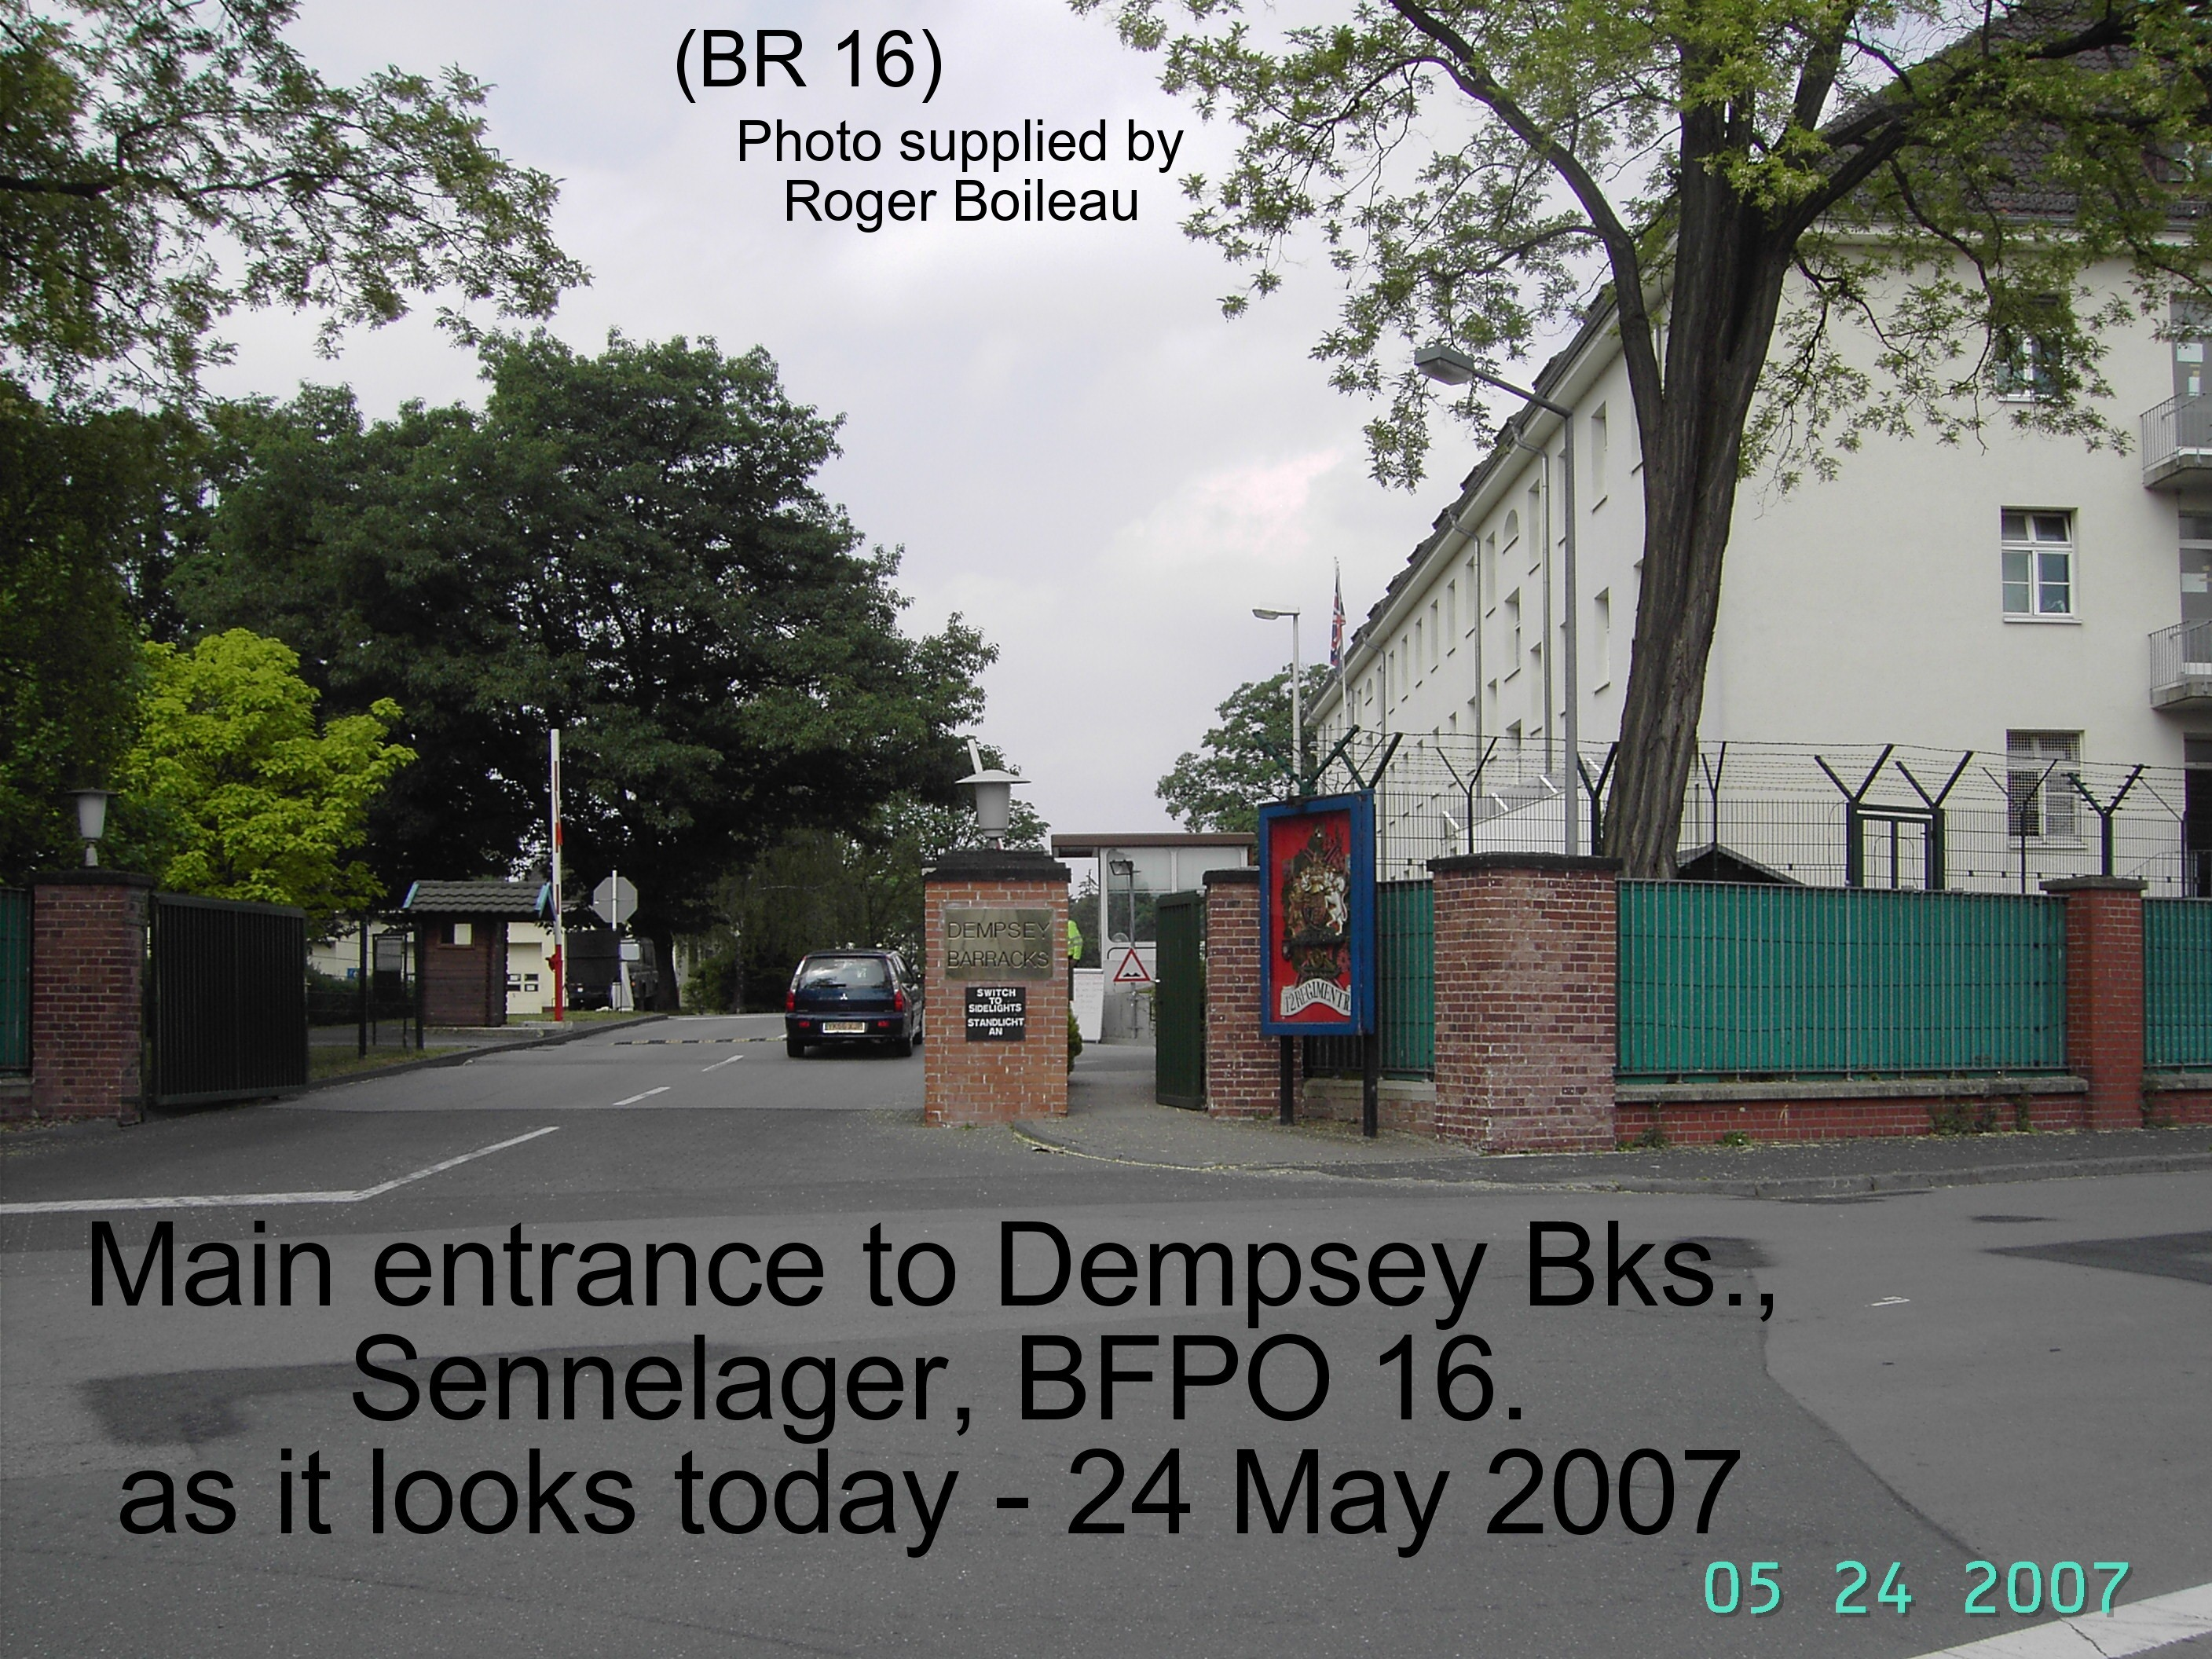 rb-16-main-entrance-to-dempsey-bks.jpg